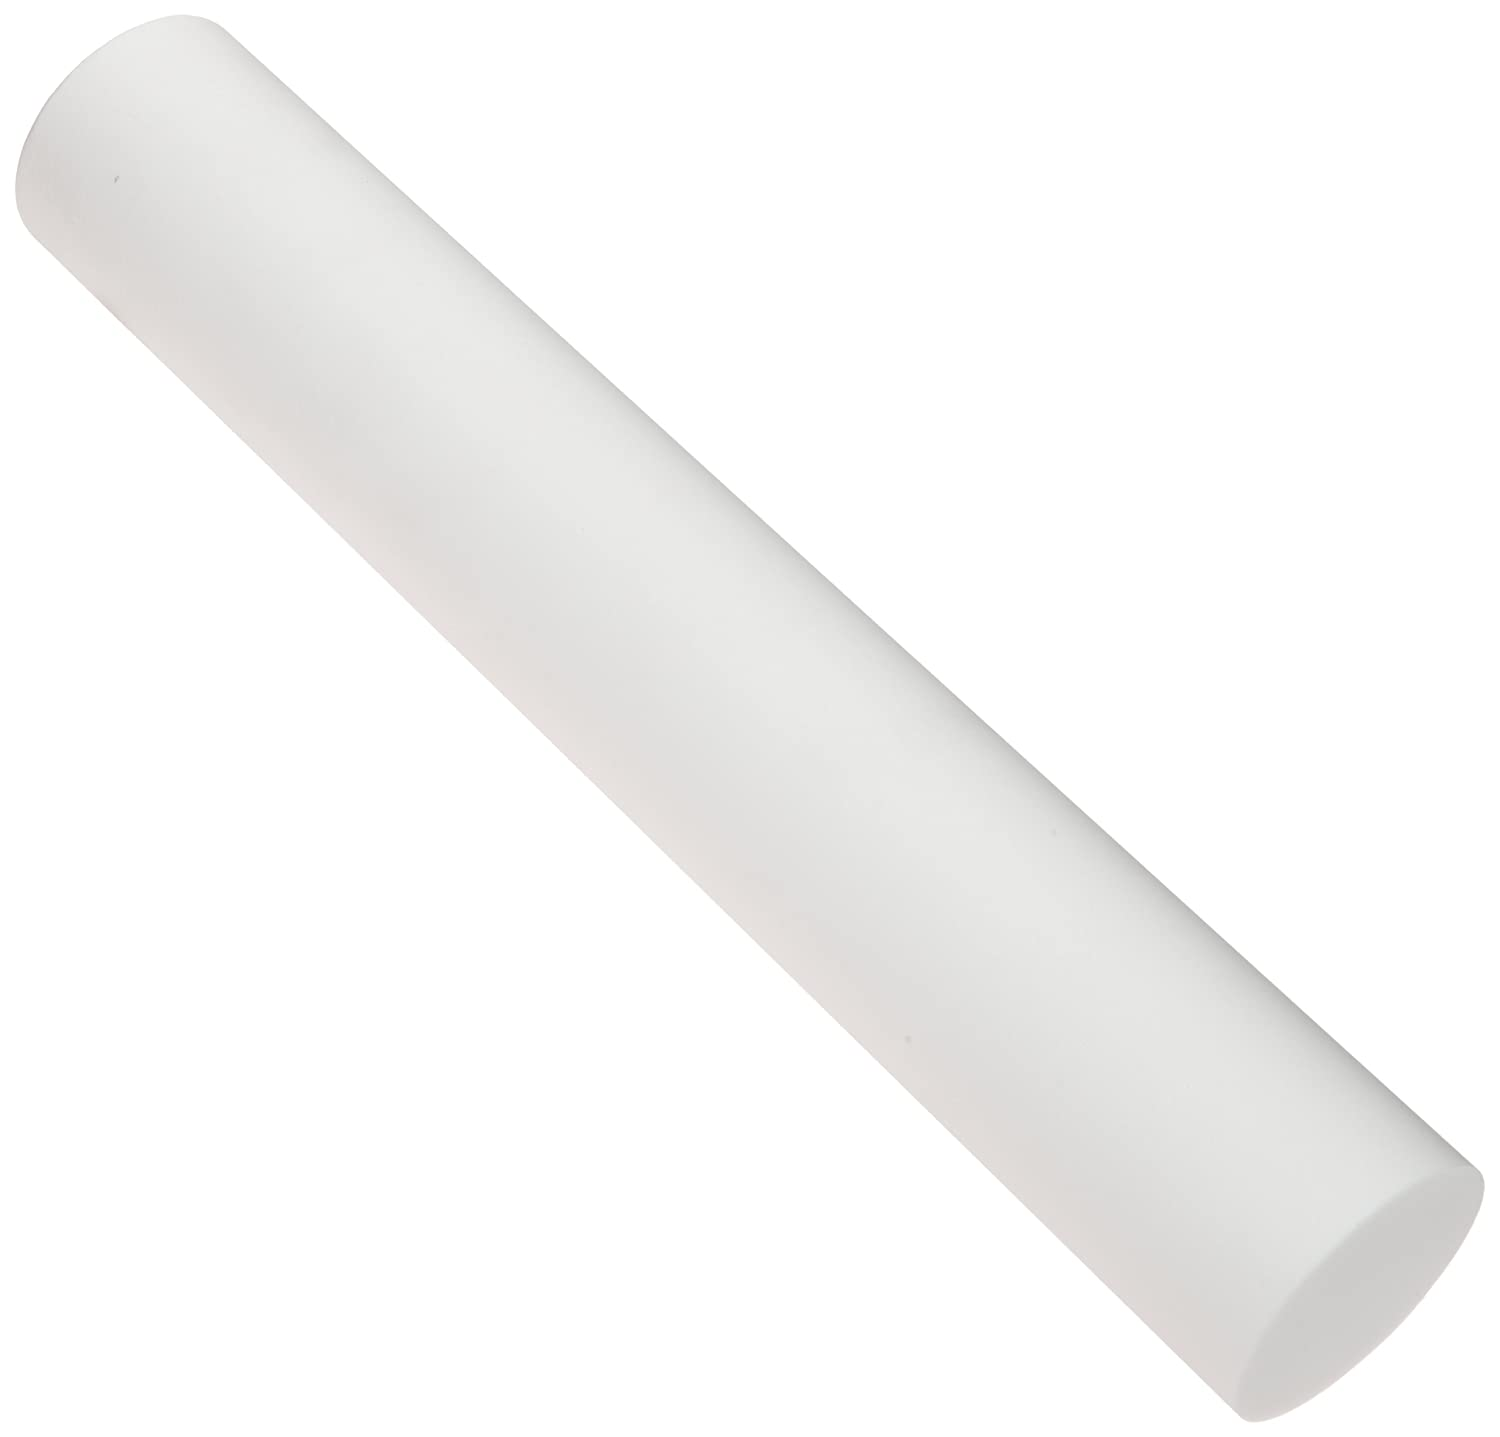 Glass-Mica Ceramic Round Rod, Opaque White, 5/16' Diameter, 3' Length (Pack of 1)